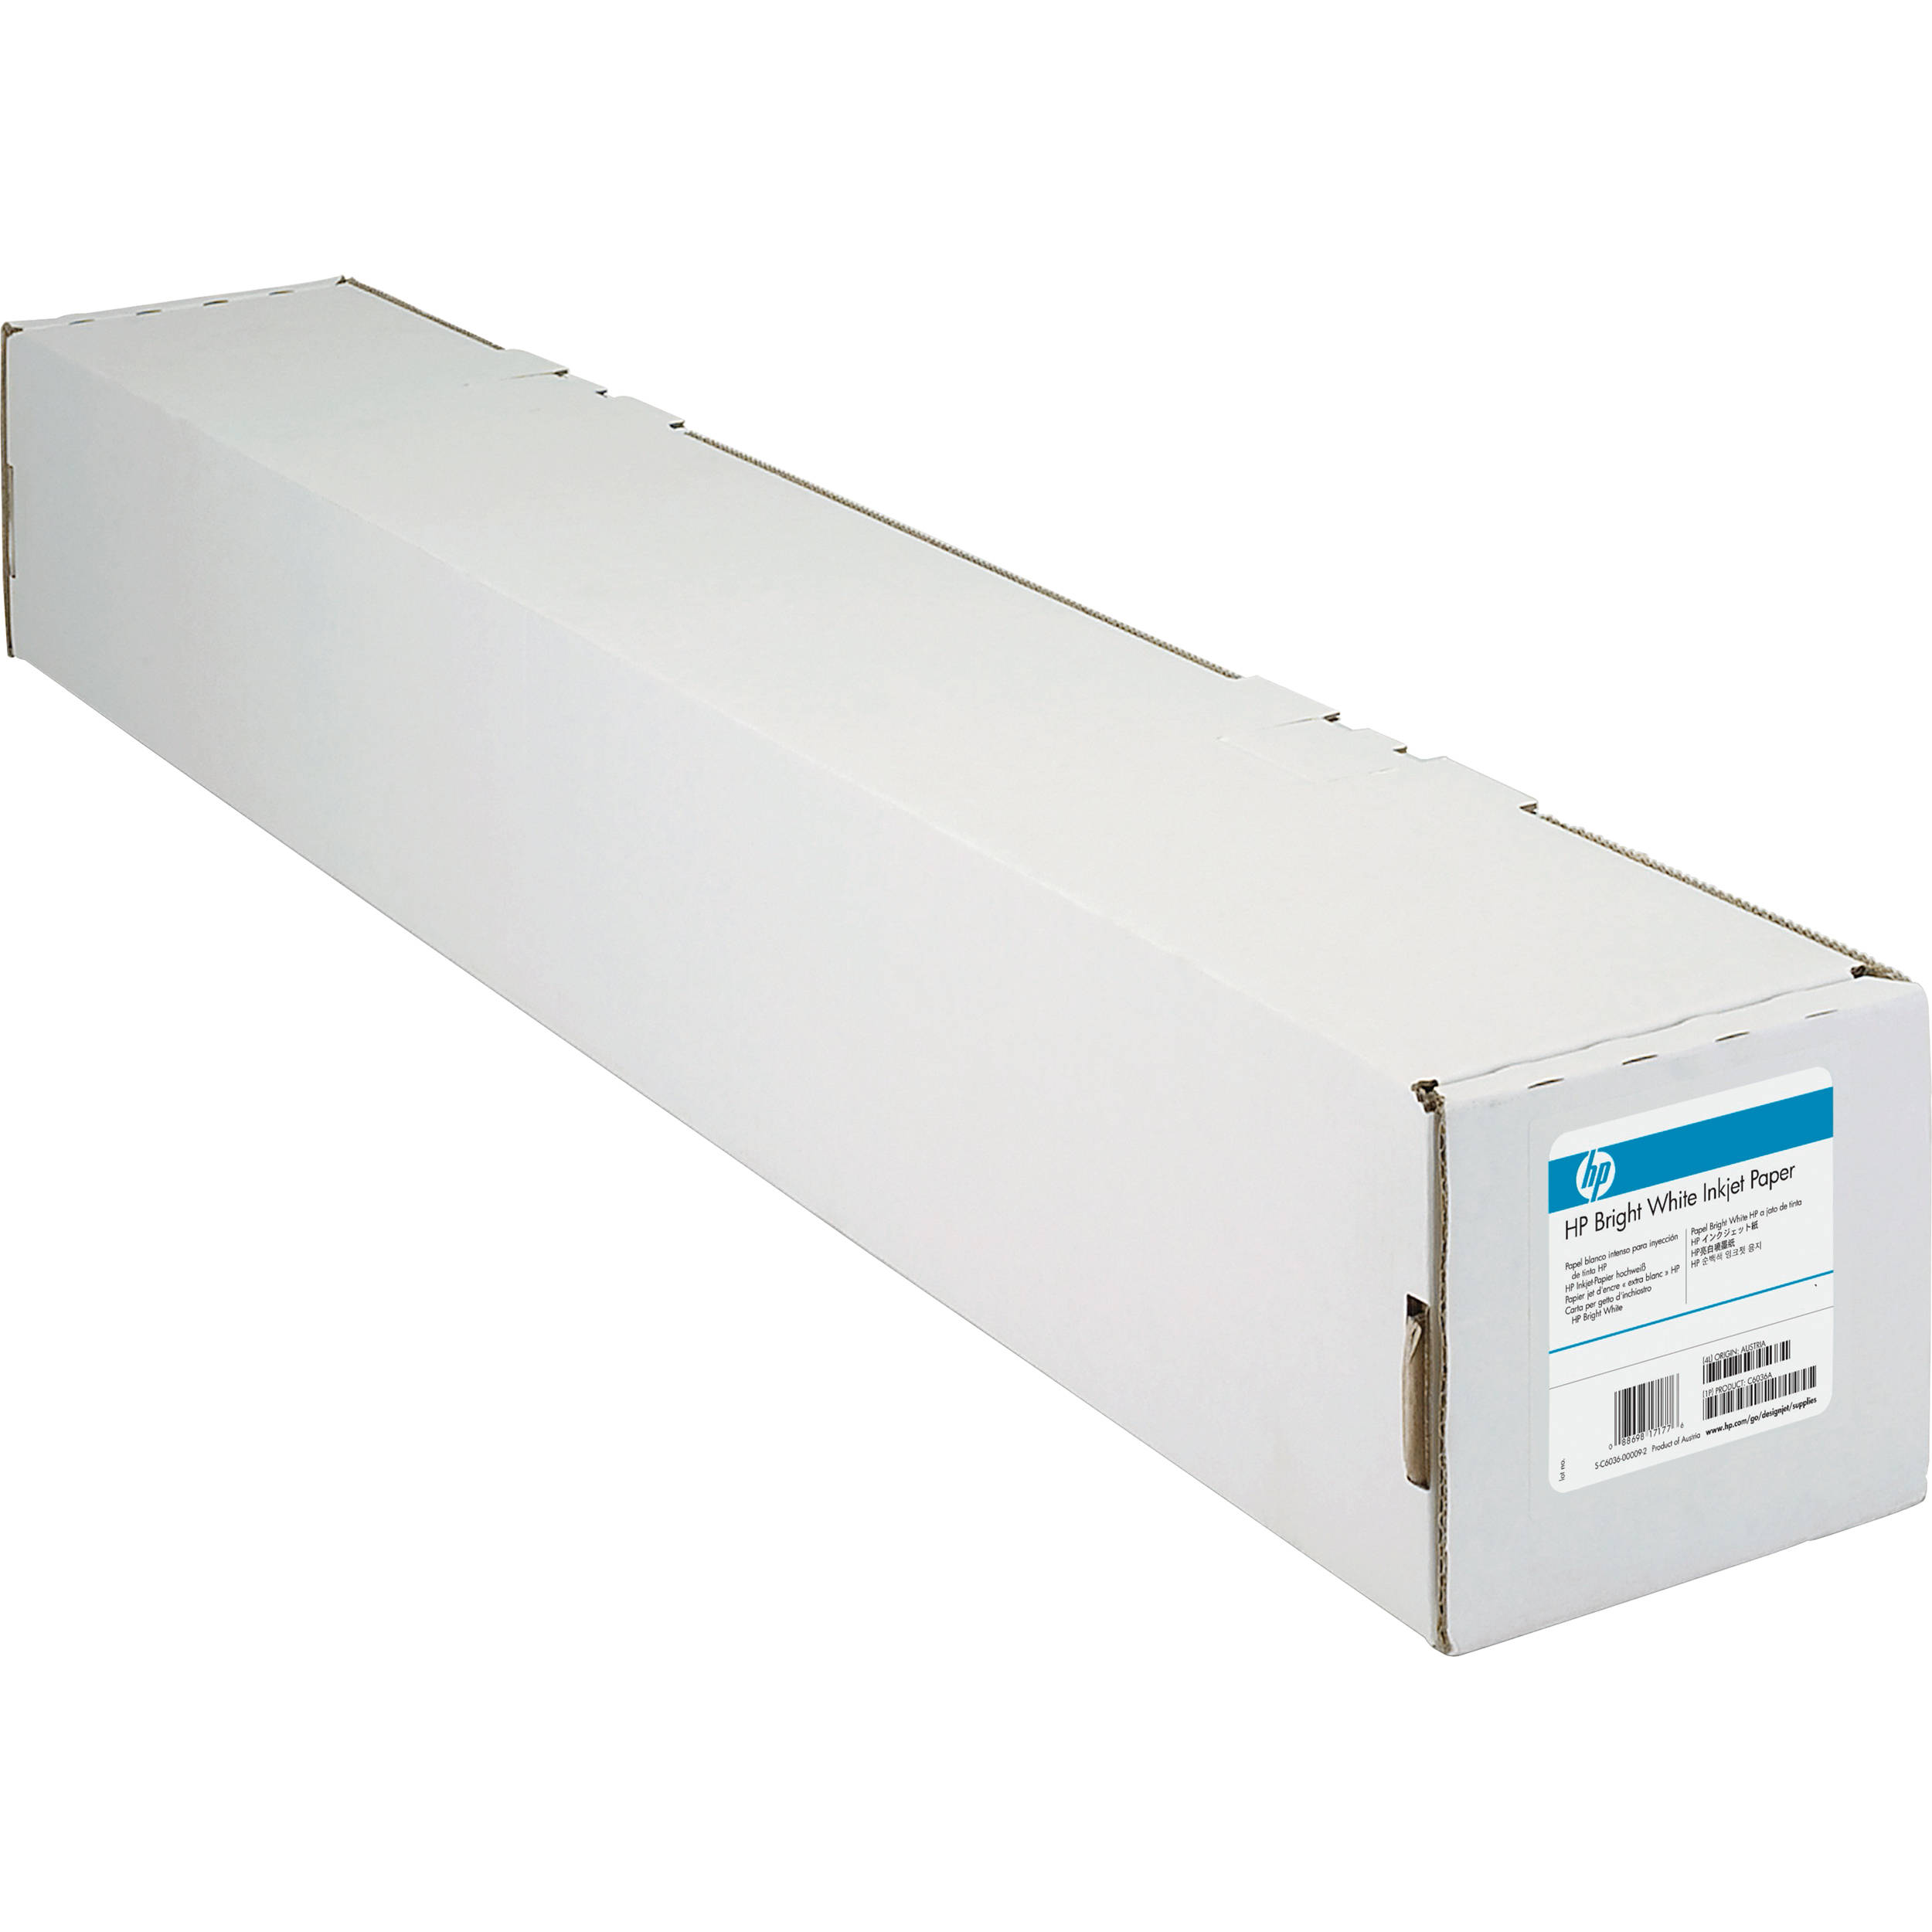 HP Bright White 90gsm Matte 914mm x 91.4m Paper Roll